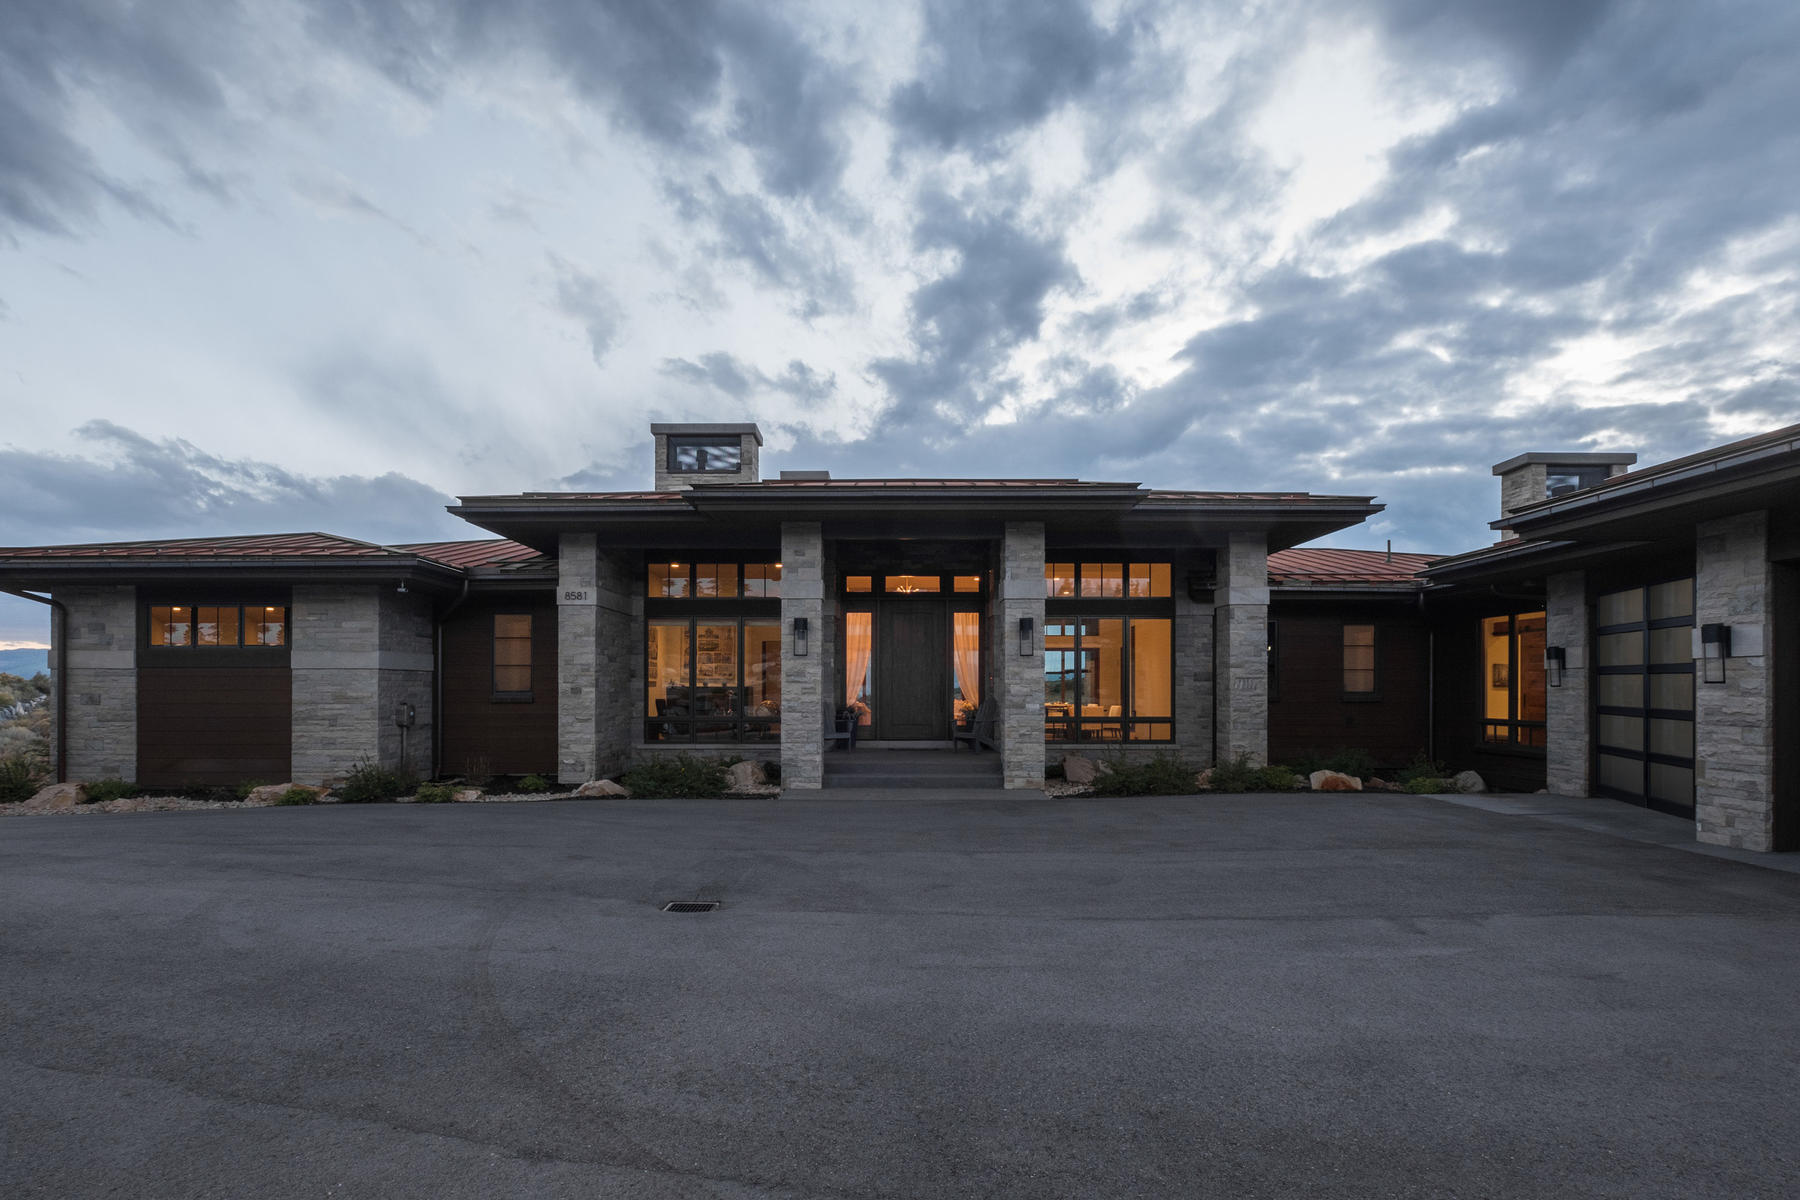 Single Family Home for Sale at Beautiful Contemporary Home Overlooking the 11th Hole of the Pete Dye Course 8581 N Marmot Circle Lot 91 Park City, Utah, 84098 United States